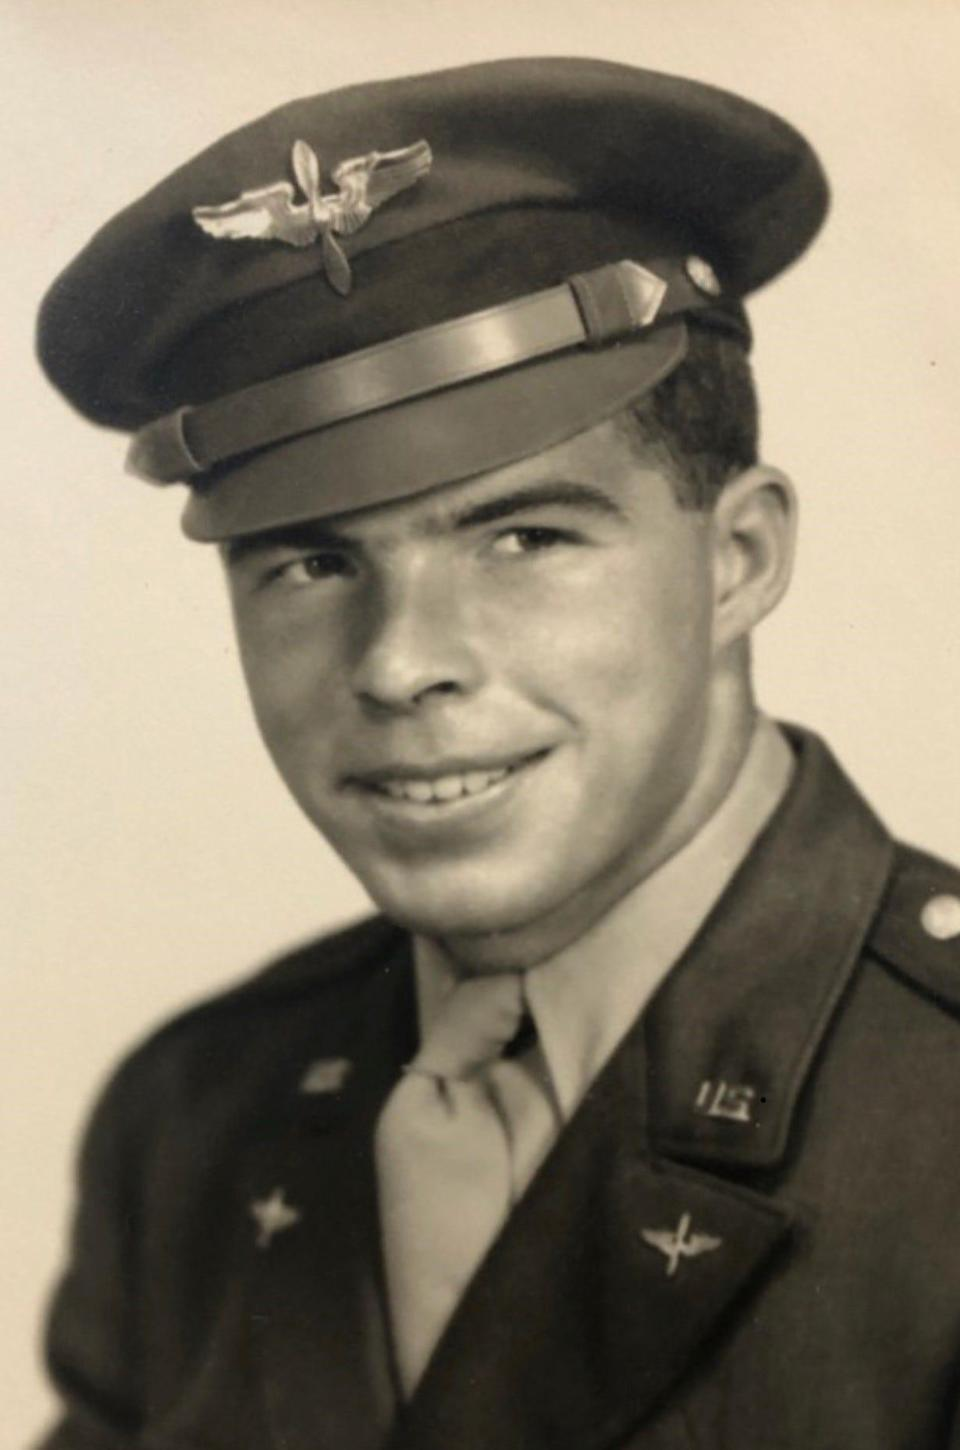 The remains of U.S. Army 1st Lieutenant Thomas Justin Redgate, who fought and died in the Korean War, were identified last year and returned to Massachusetts this week. He will be buried Friday at the Massachusetts National Cemetery in Bourne.